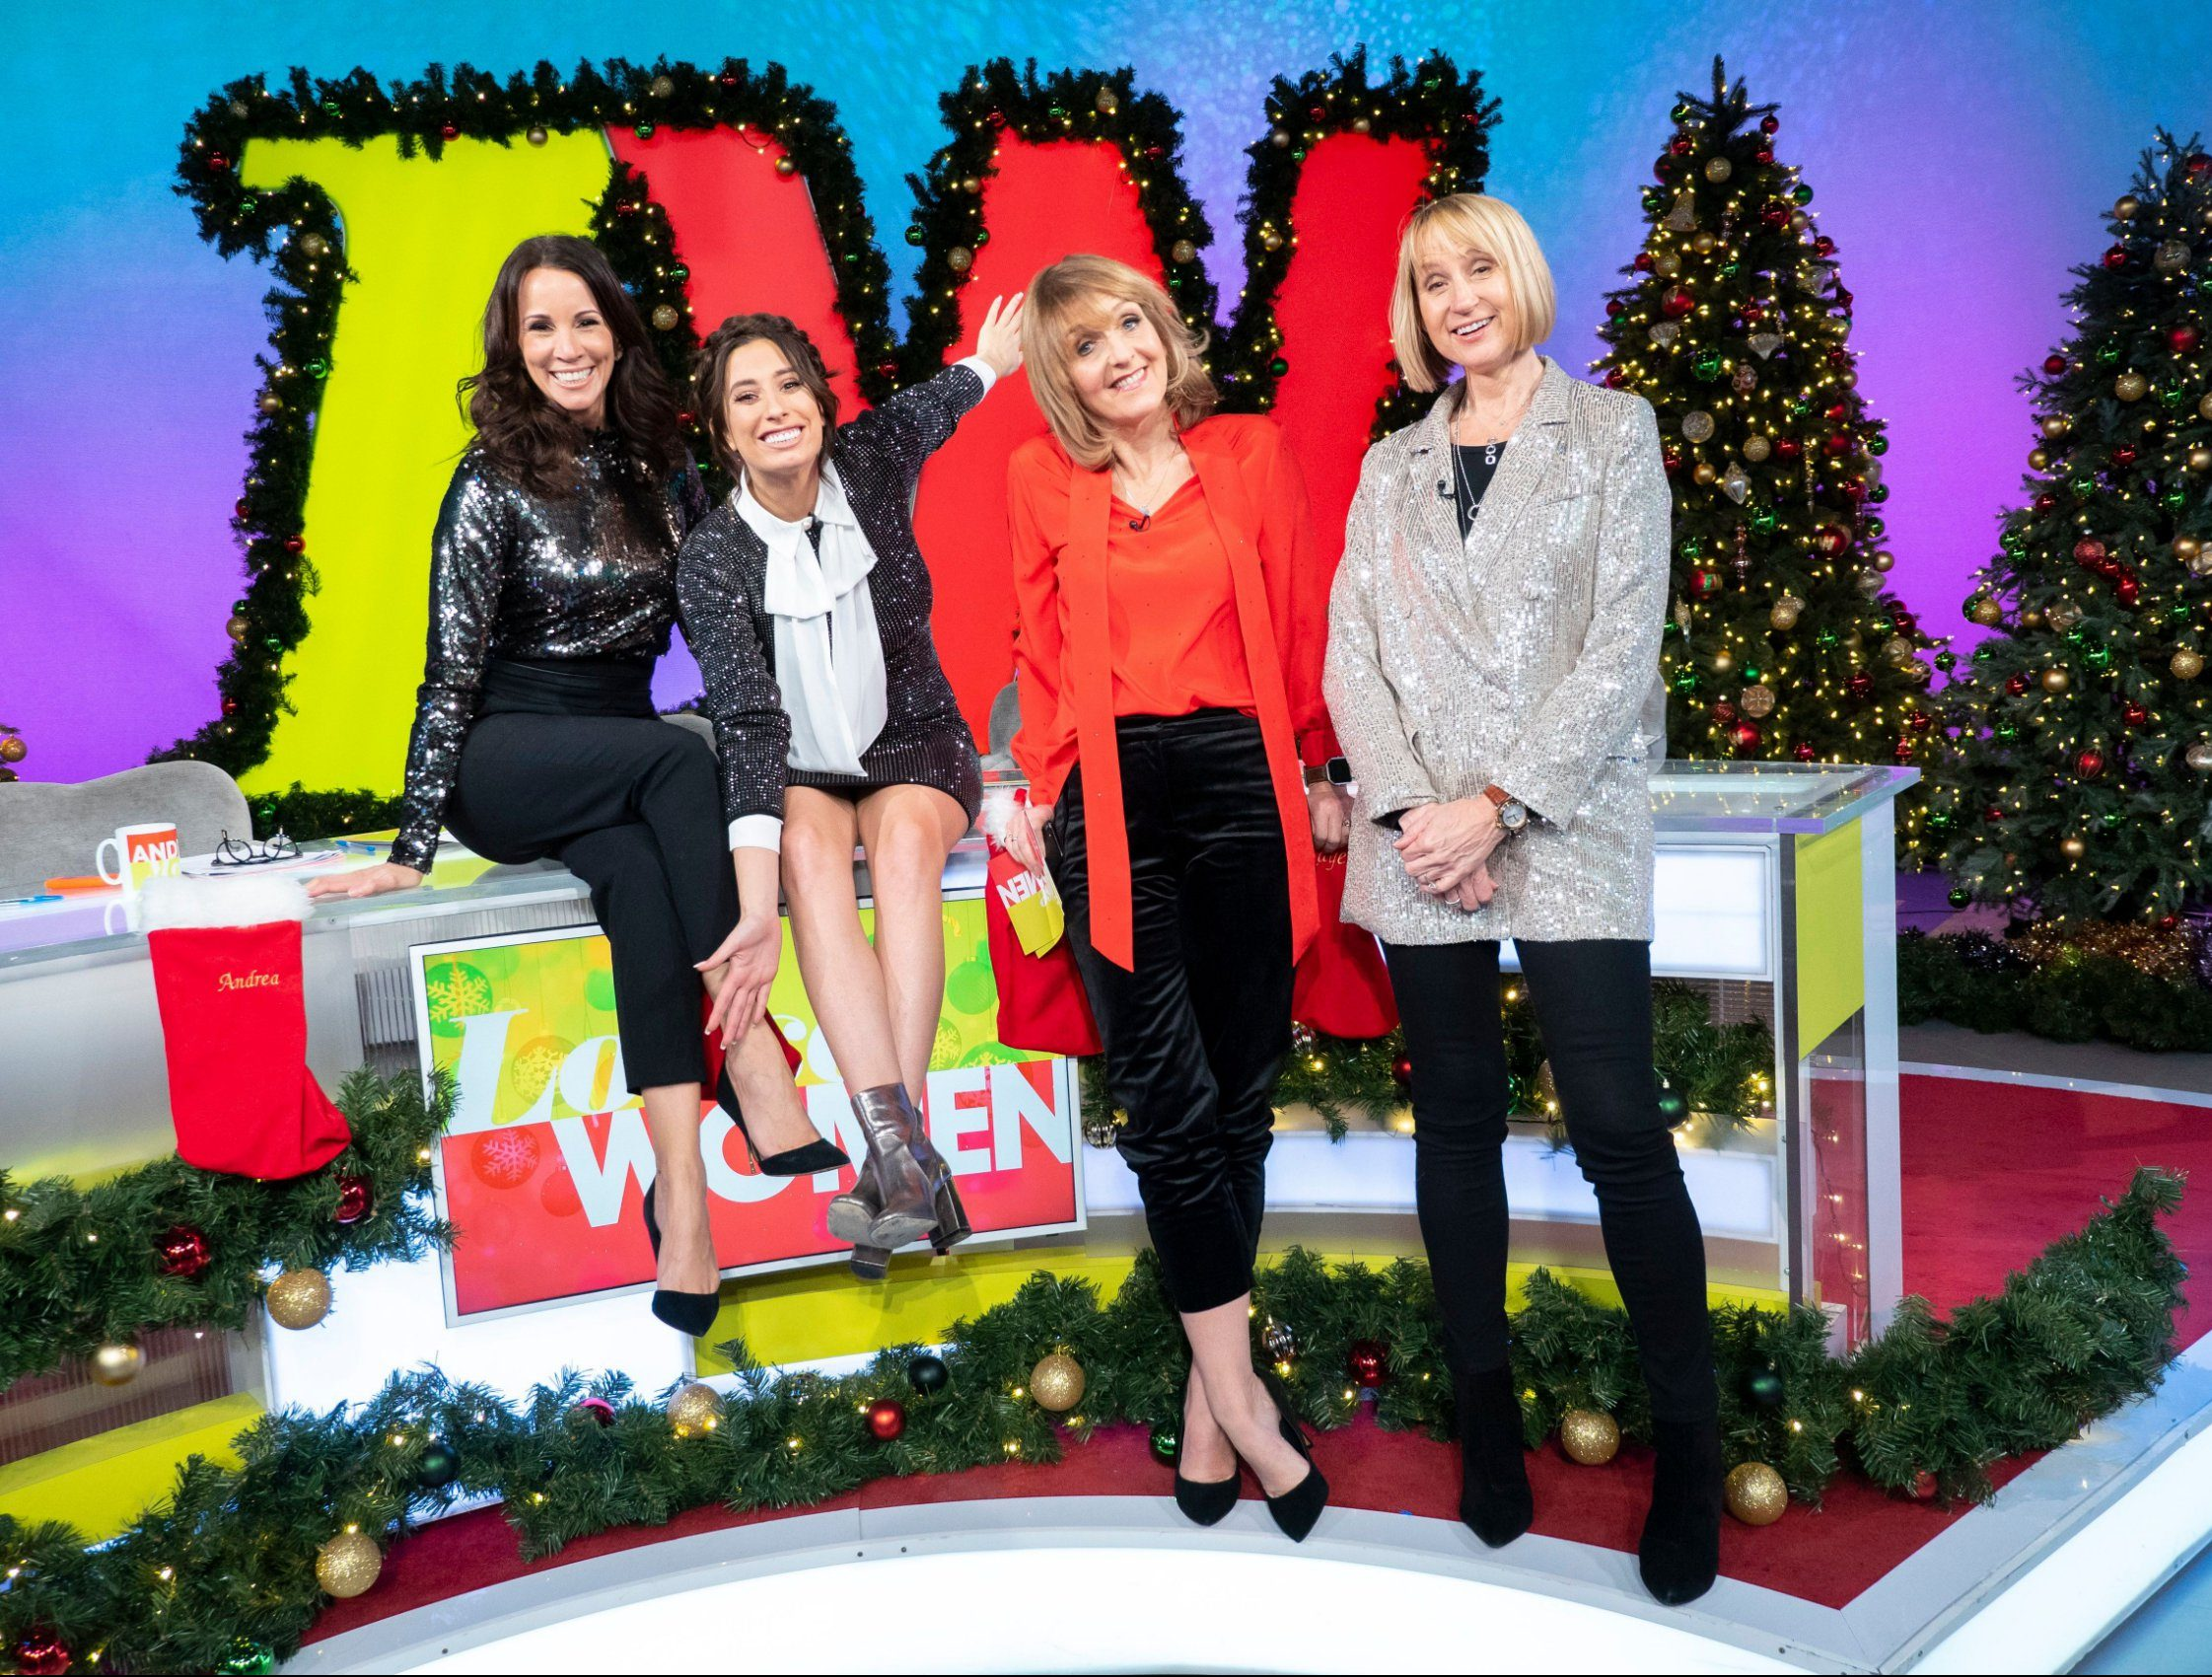 Loose Women to move to evenings as they 'take the show on tour to mark 20th anniversary'